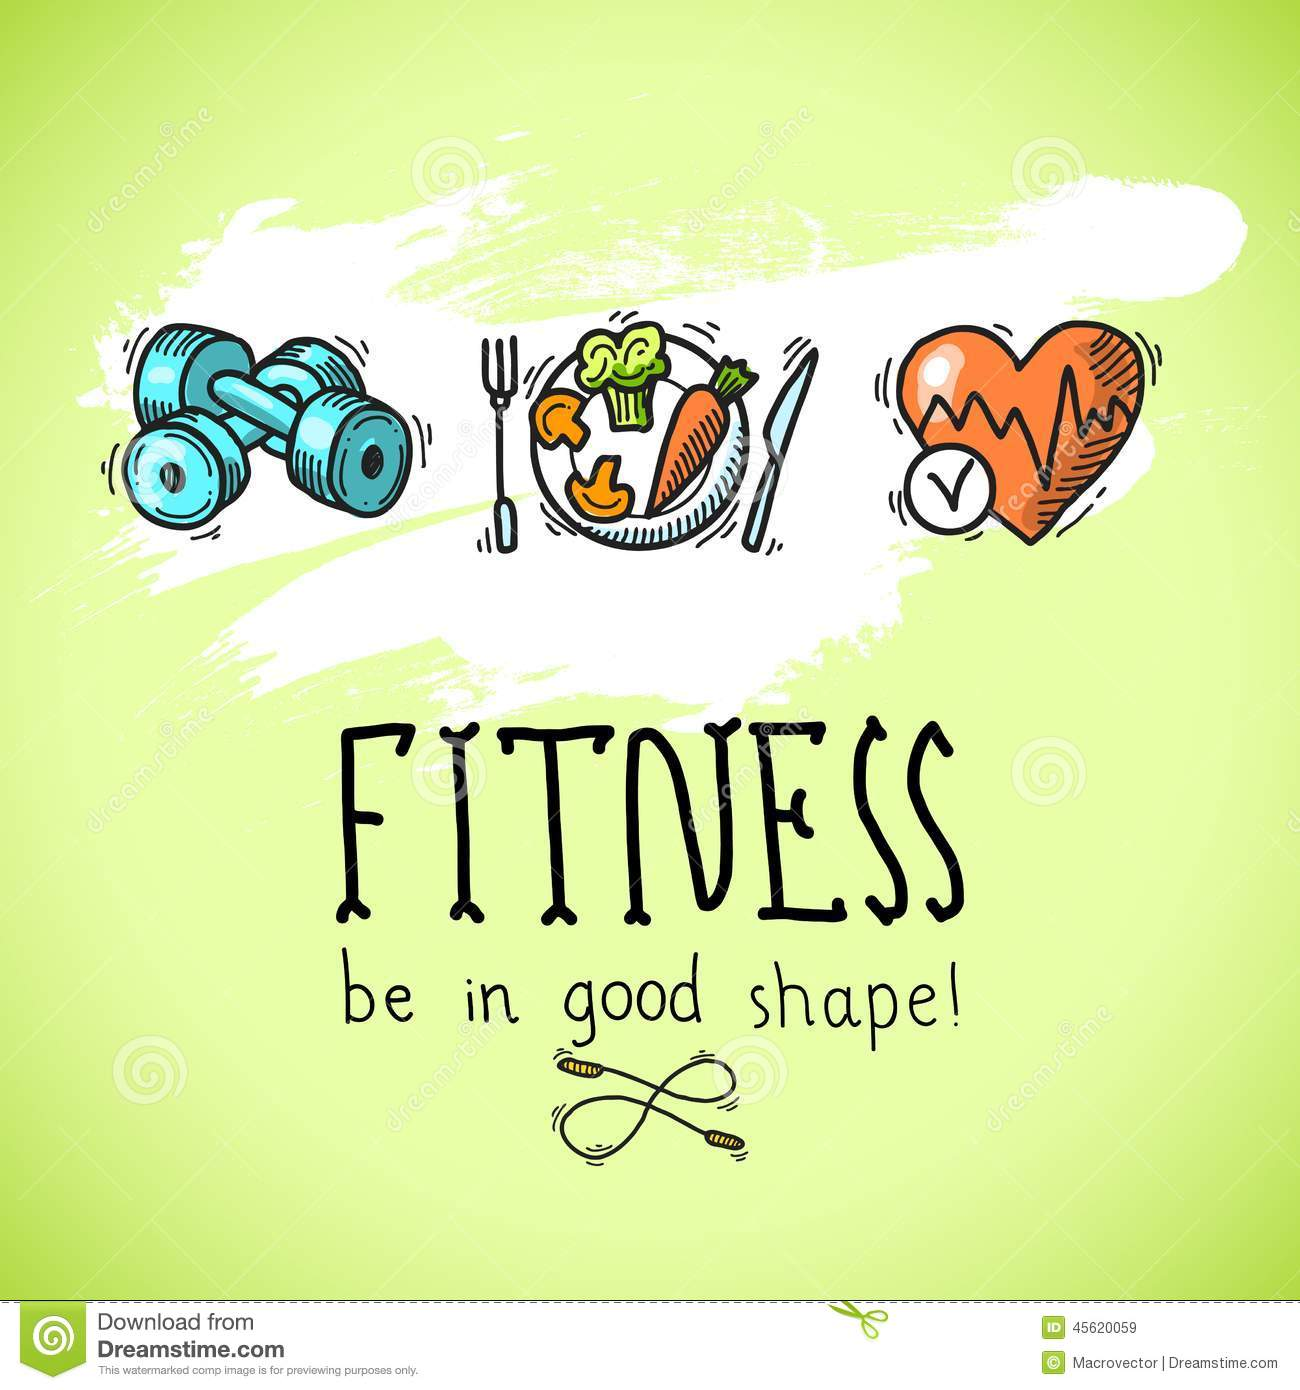 Fitness Sketch Poster Diet Training Sport Exercise Be Good Shape Colored Vector Illustration Box Nutrition